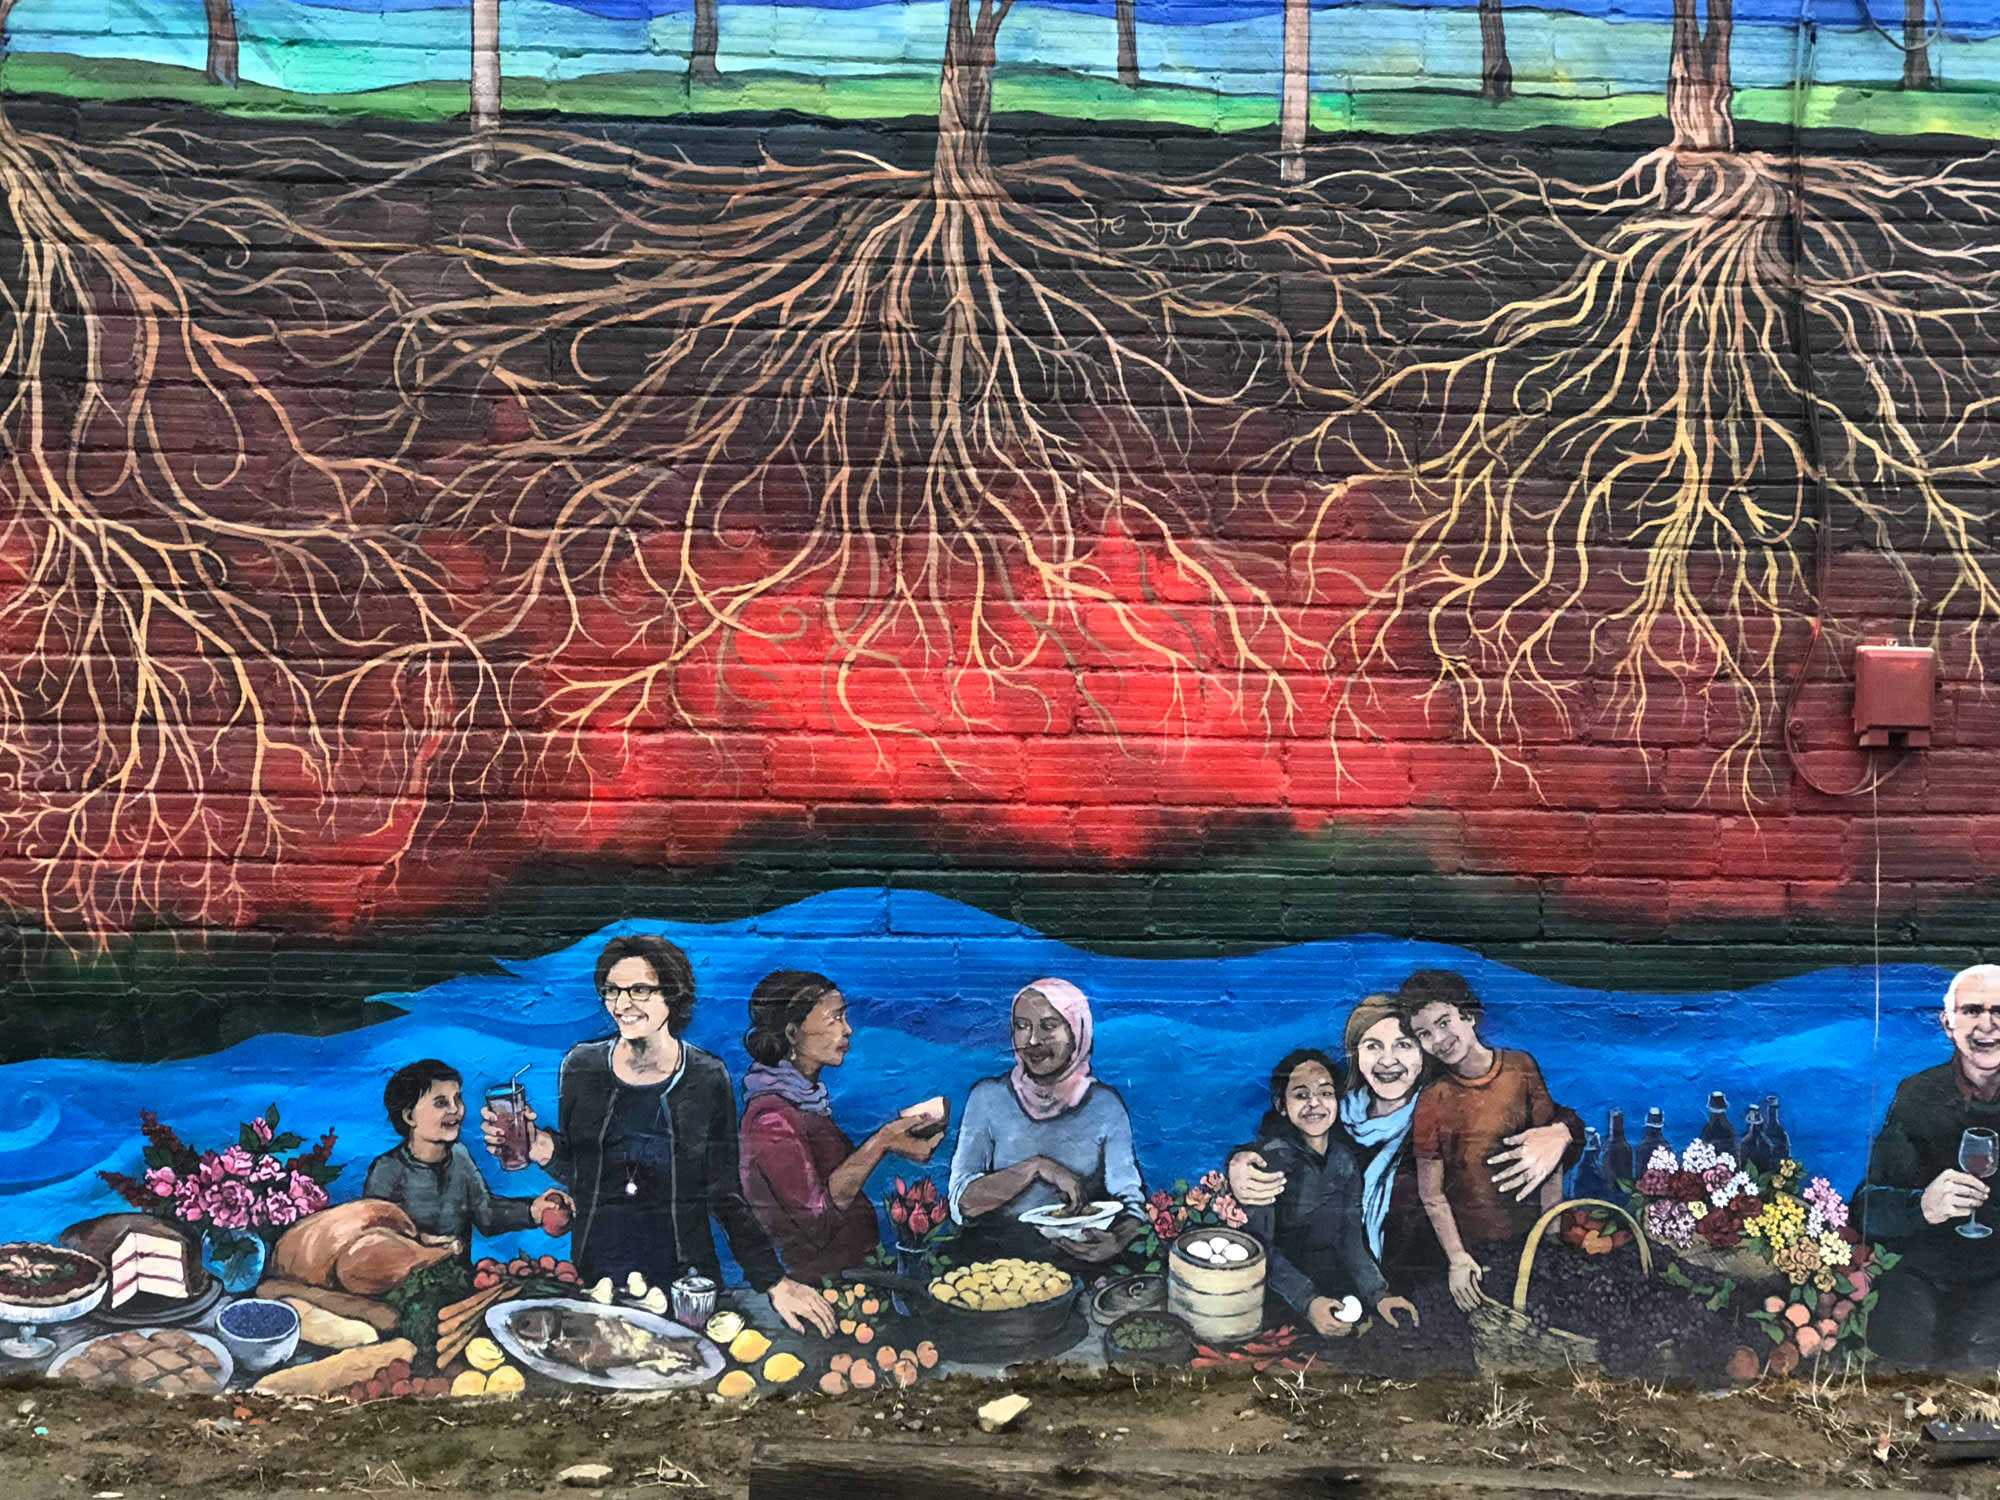 A painting depicts friends gathering over food, artistically under the roots of trees.